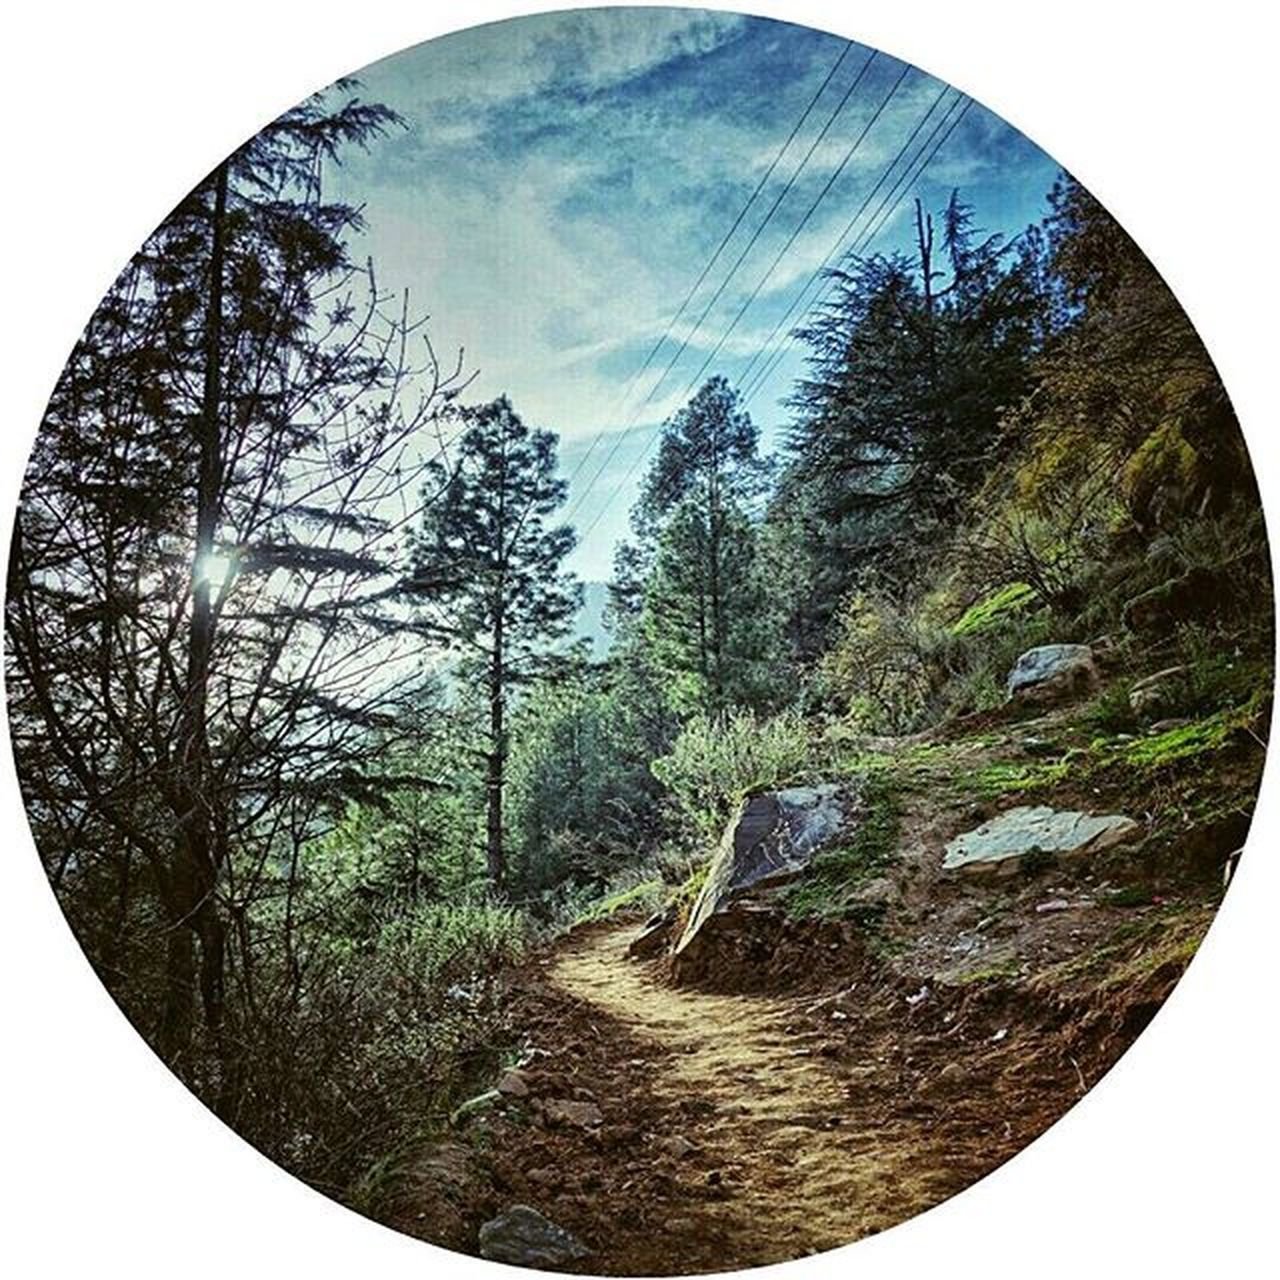 tree, plant, sky, nature, no people, day, reflection, geometric shape, circle, tranquility, tranquil scene, land, scenics - nature, forest, beauty in nature, shape, growth, fish-eye lens, outdoors, transparent, digital composite, coniferous tree